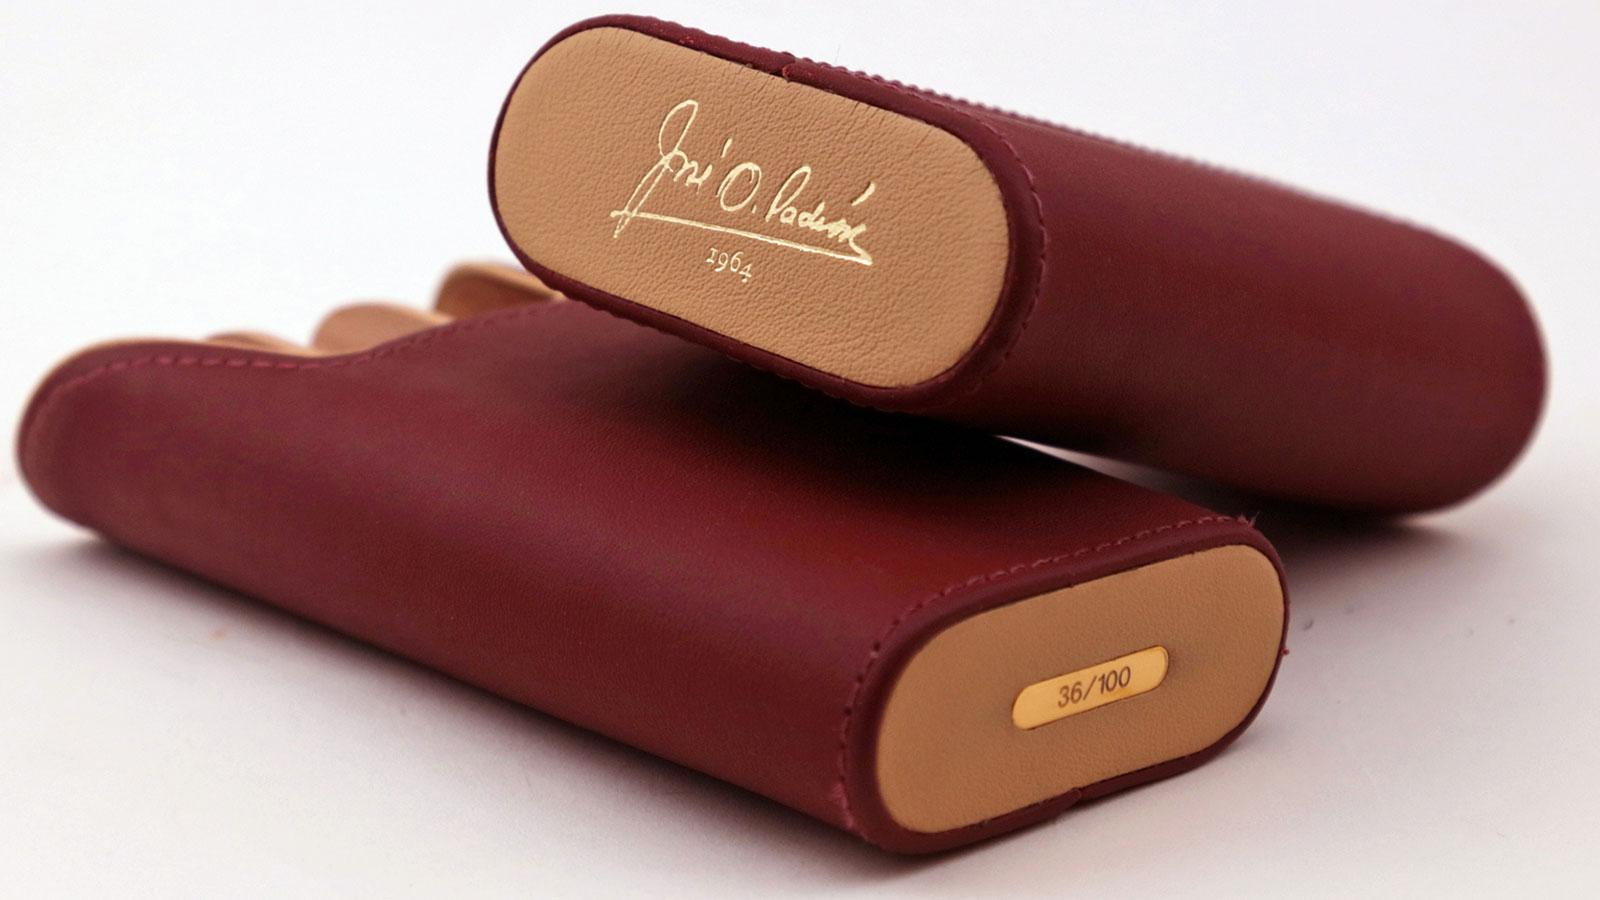 For Padrón, Brizard has crafted a burgundy leather cigar case called The Little Hammer.